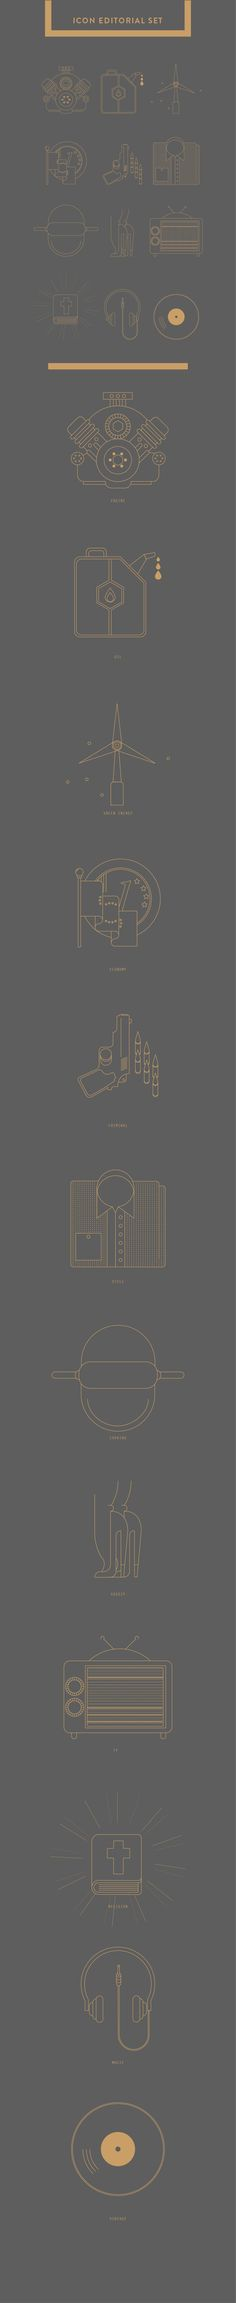 ICON EDITORIAL SET #2 by matteo franco, via Behance